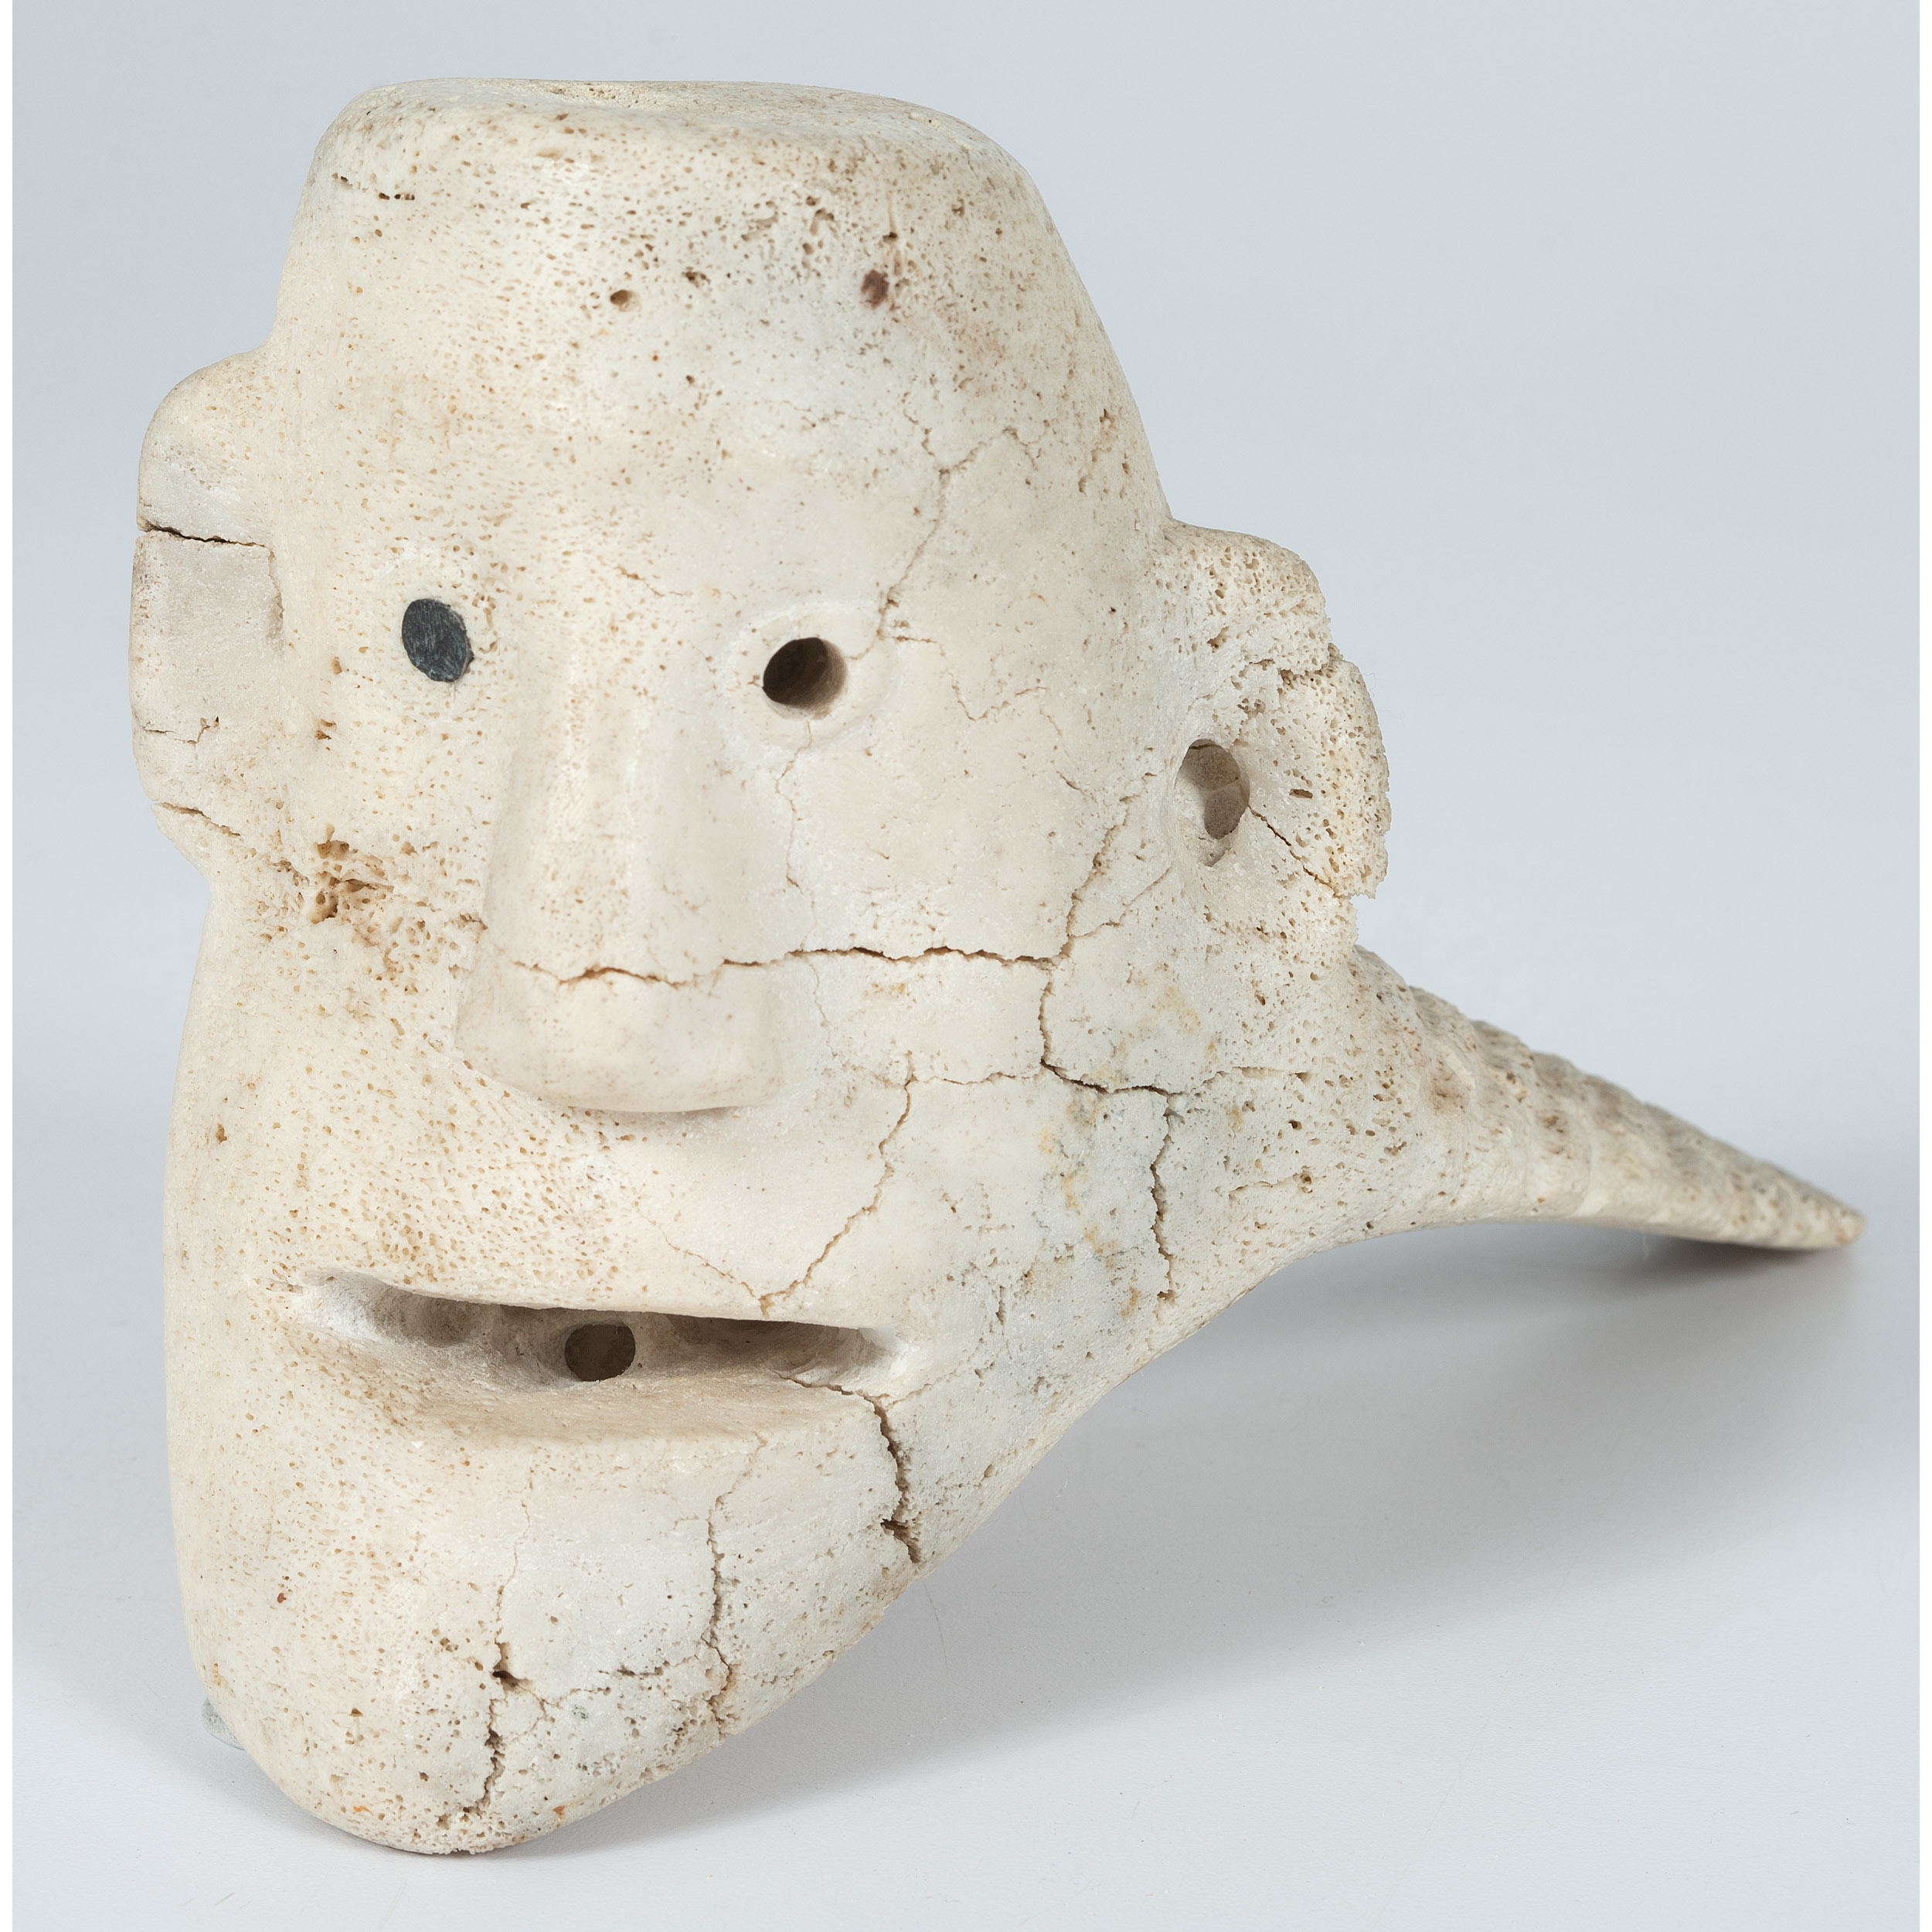 Inuit Carving Of Sedna Cowan S Auction House The Midwest S Most Trusted Auction House Antiques Fine Art Art Appraisals